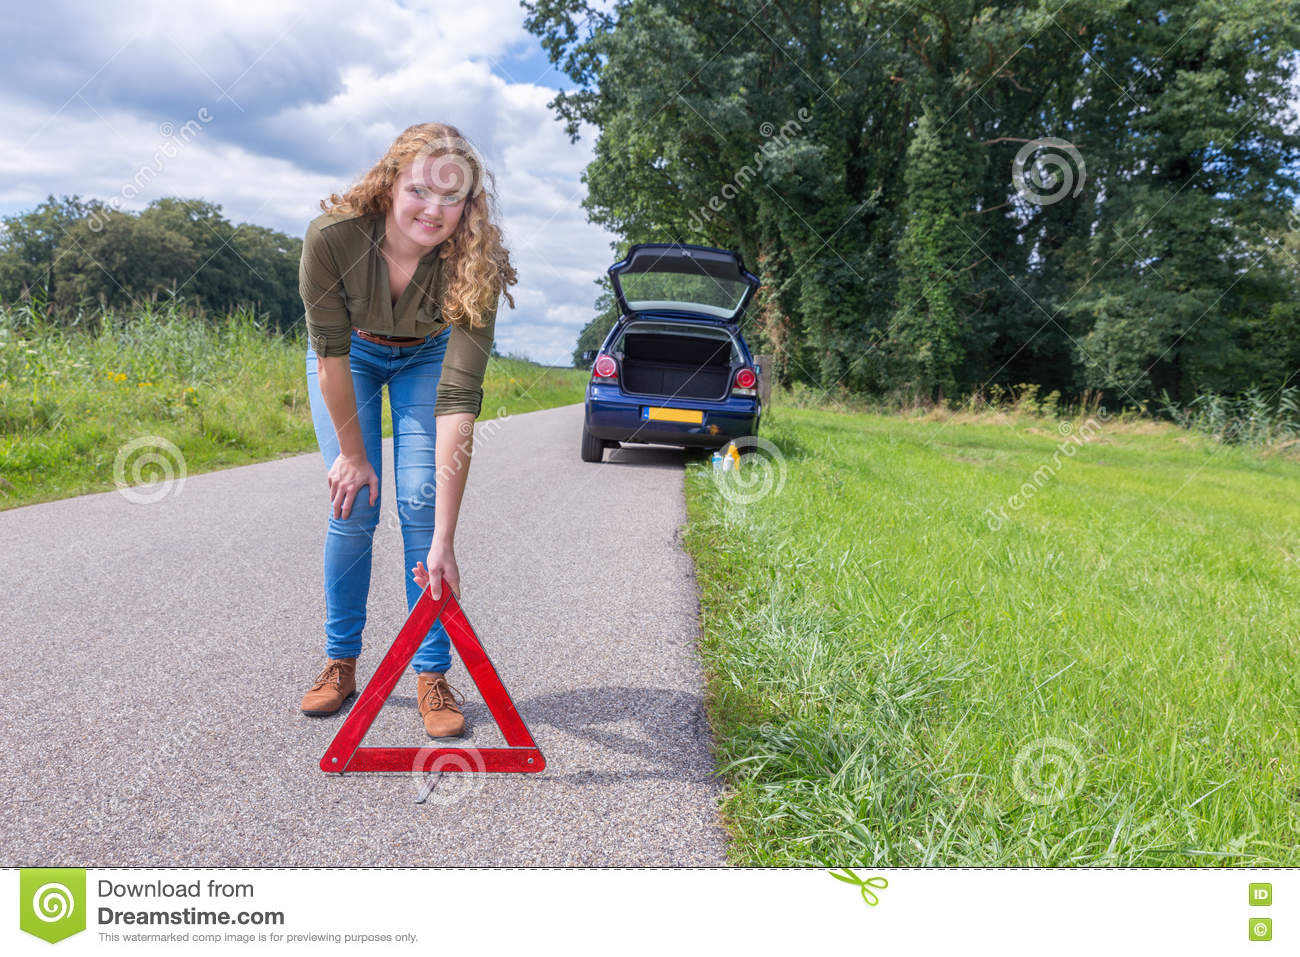 Dutch woman placing warning triangle on rural road